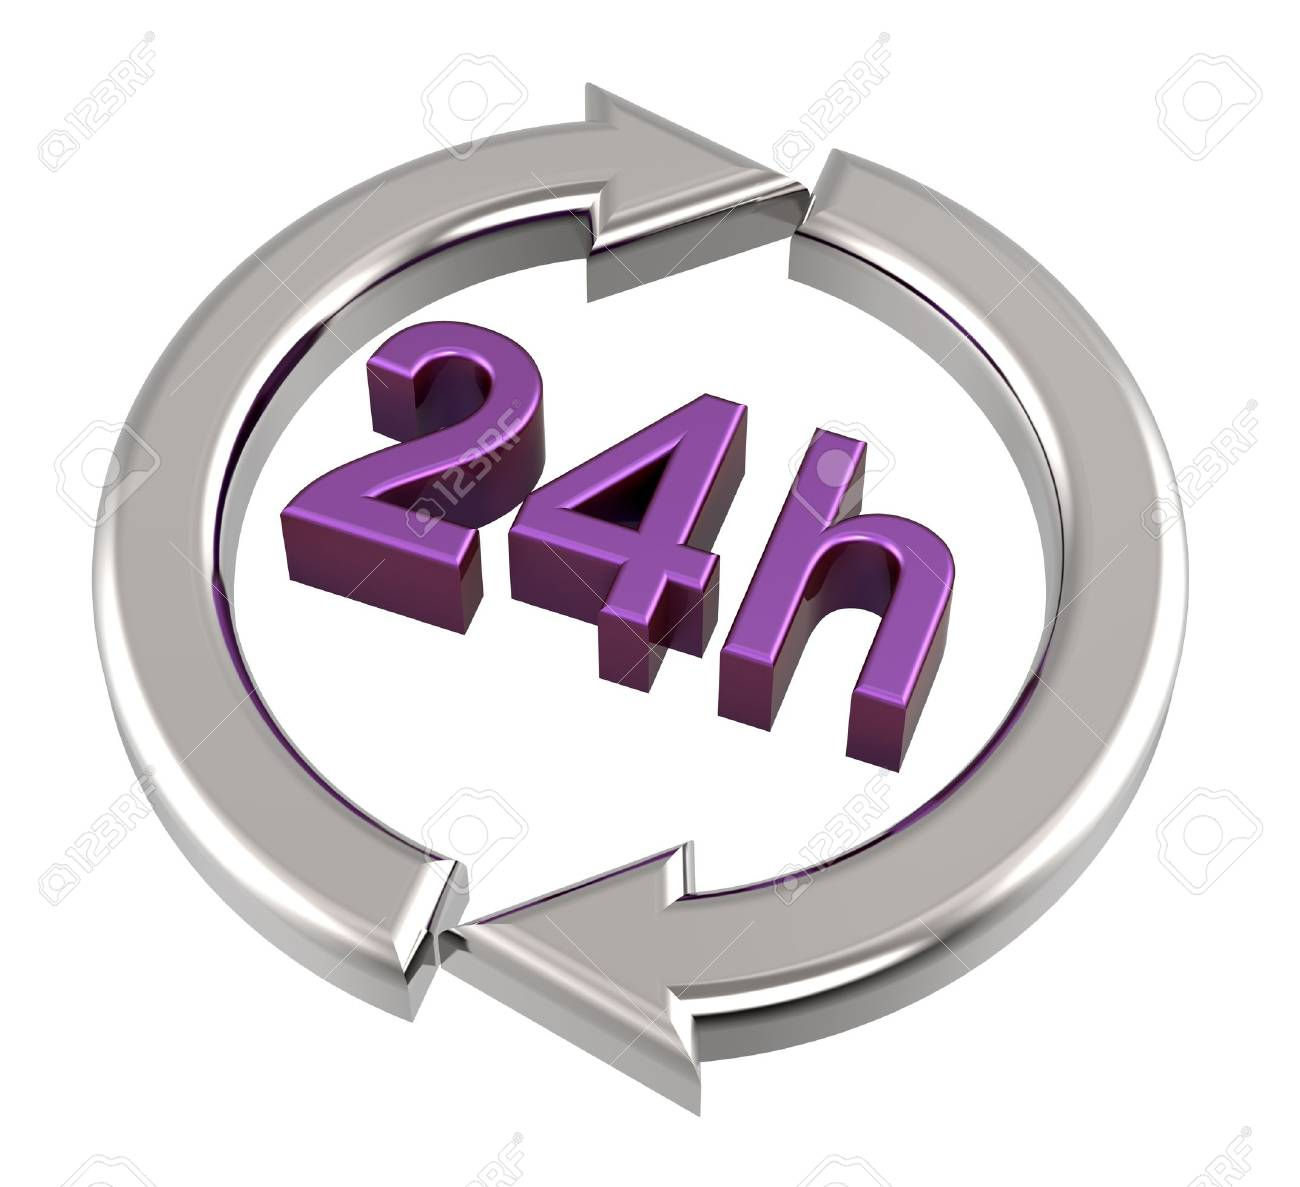 24 hours delivery sign. Computer generated 3D photo rendering. Stock Photo - 12466942